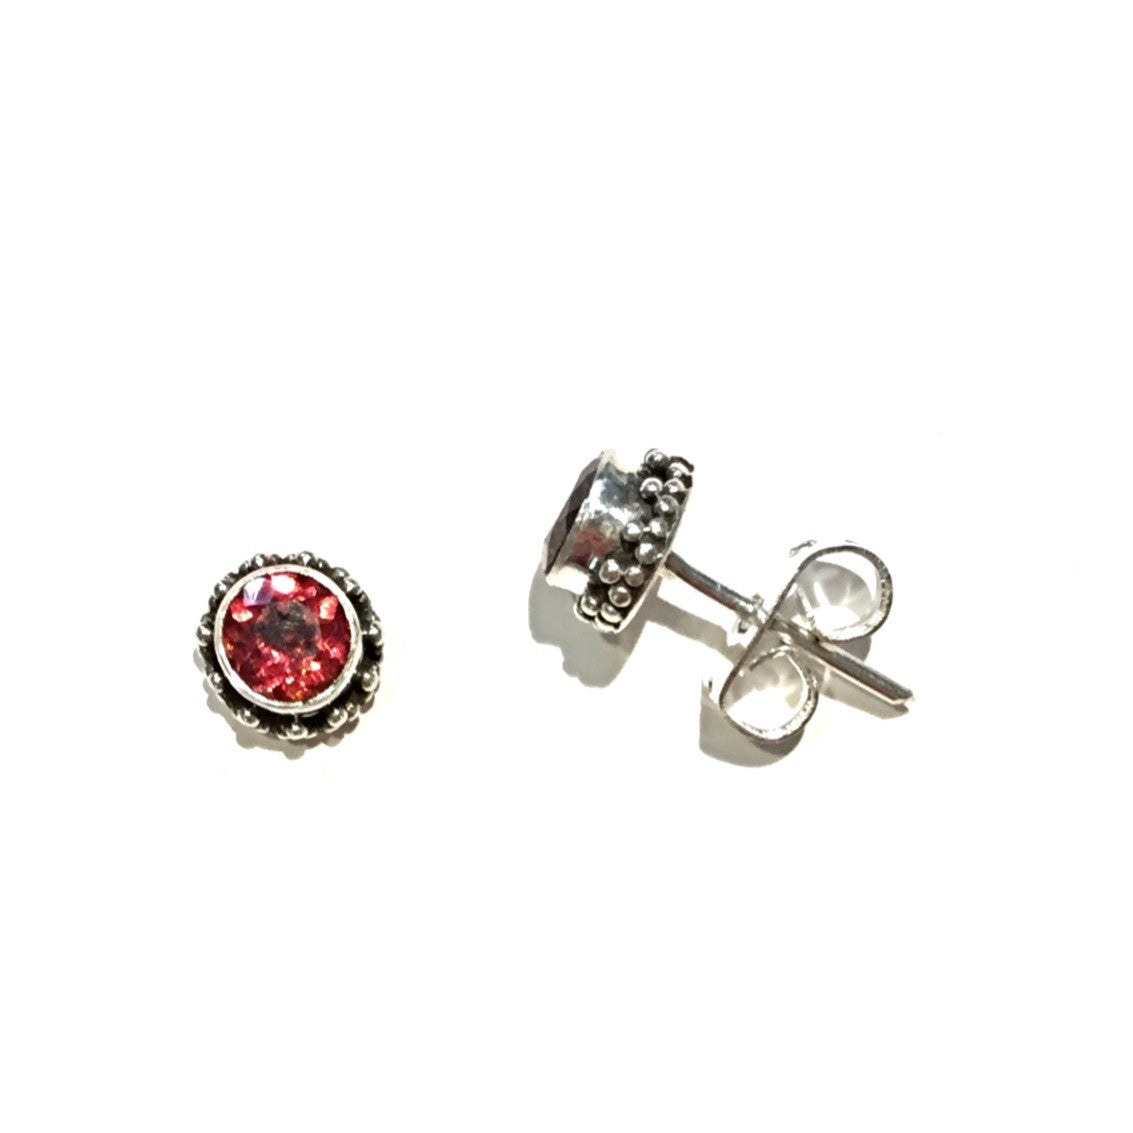 Round Faceted Garnet Posts with Border, $16 | Sterling Silver Stud Earrings | Light Years Jewelry